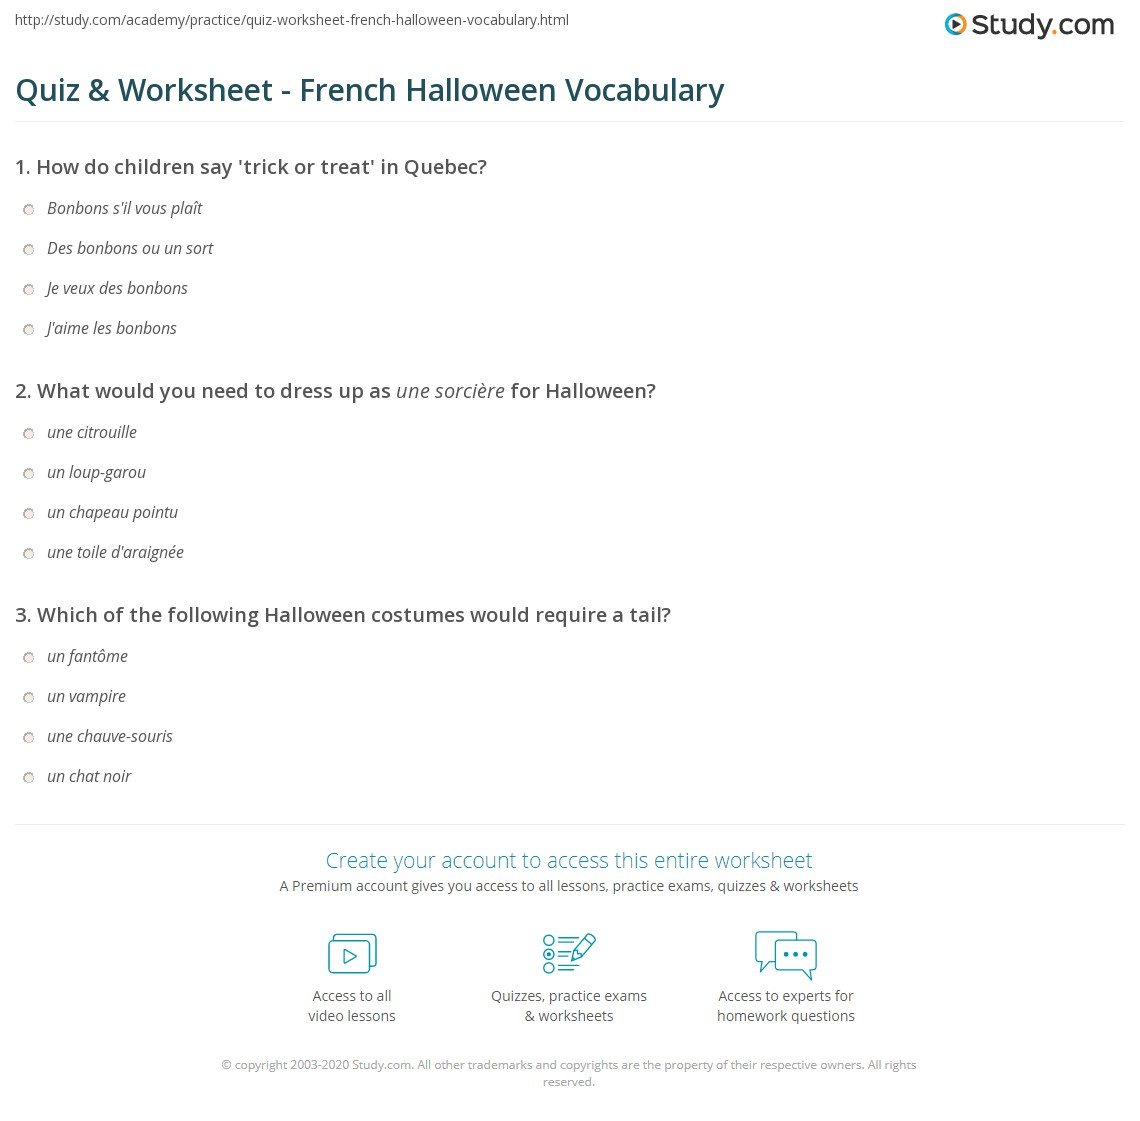 Quiz & Worksheet - French Halloween Vocabulary | Study.com